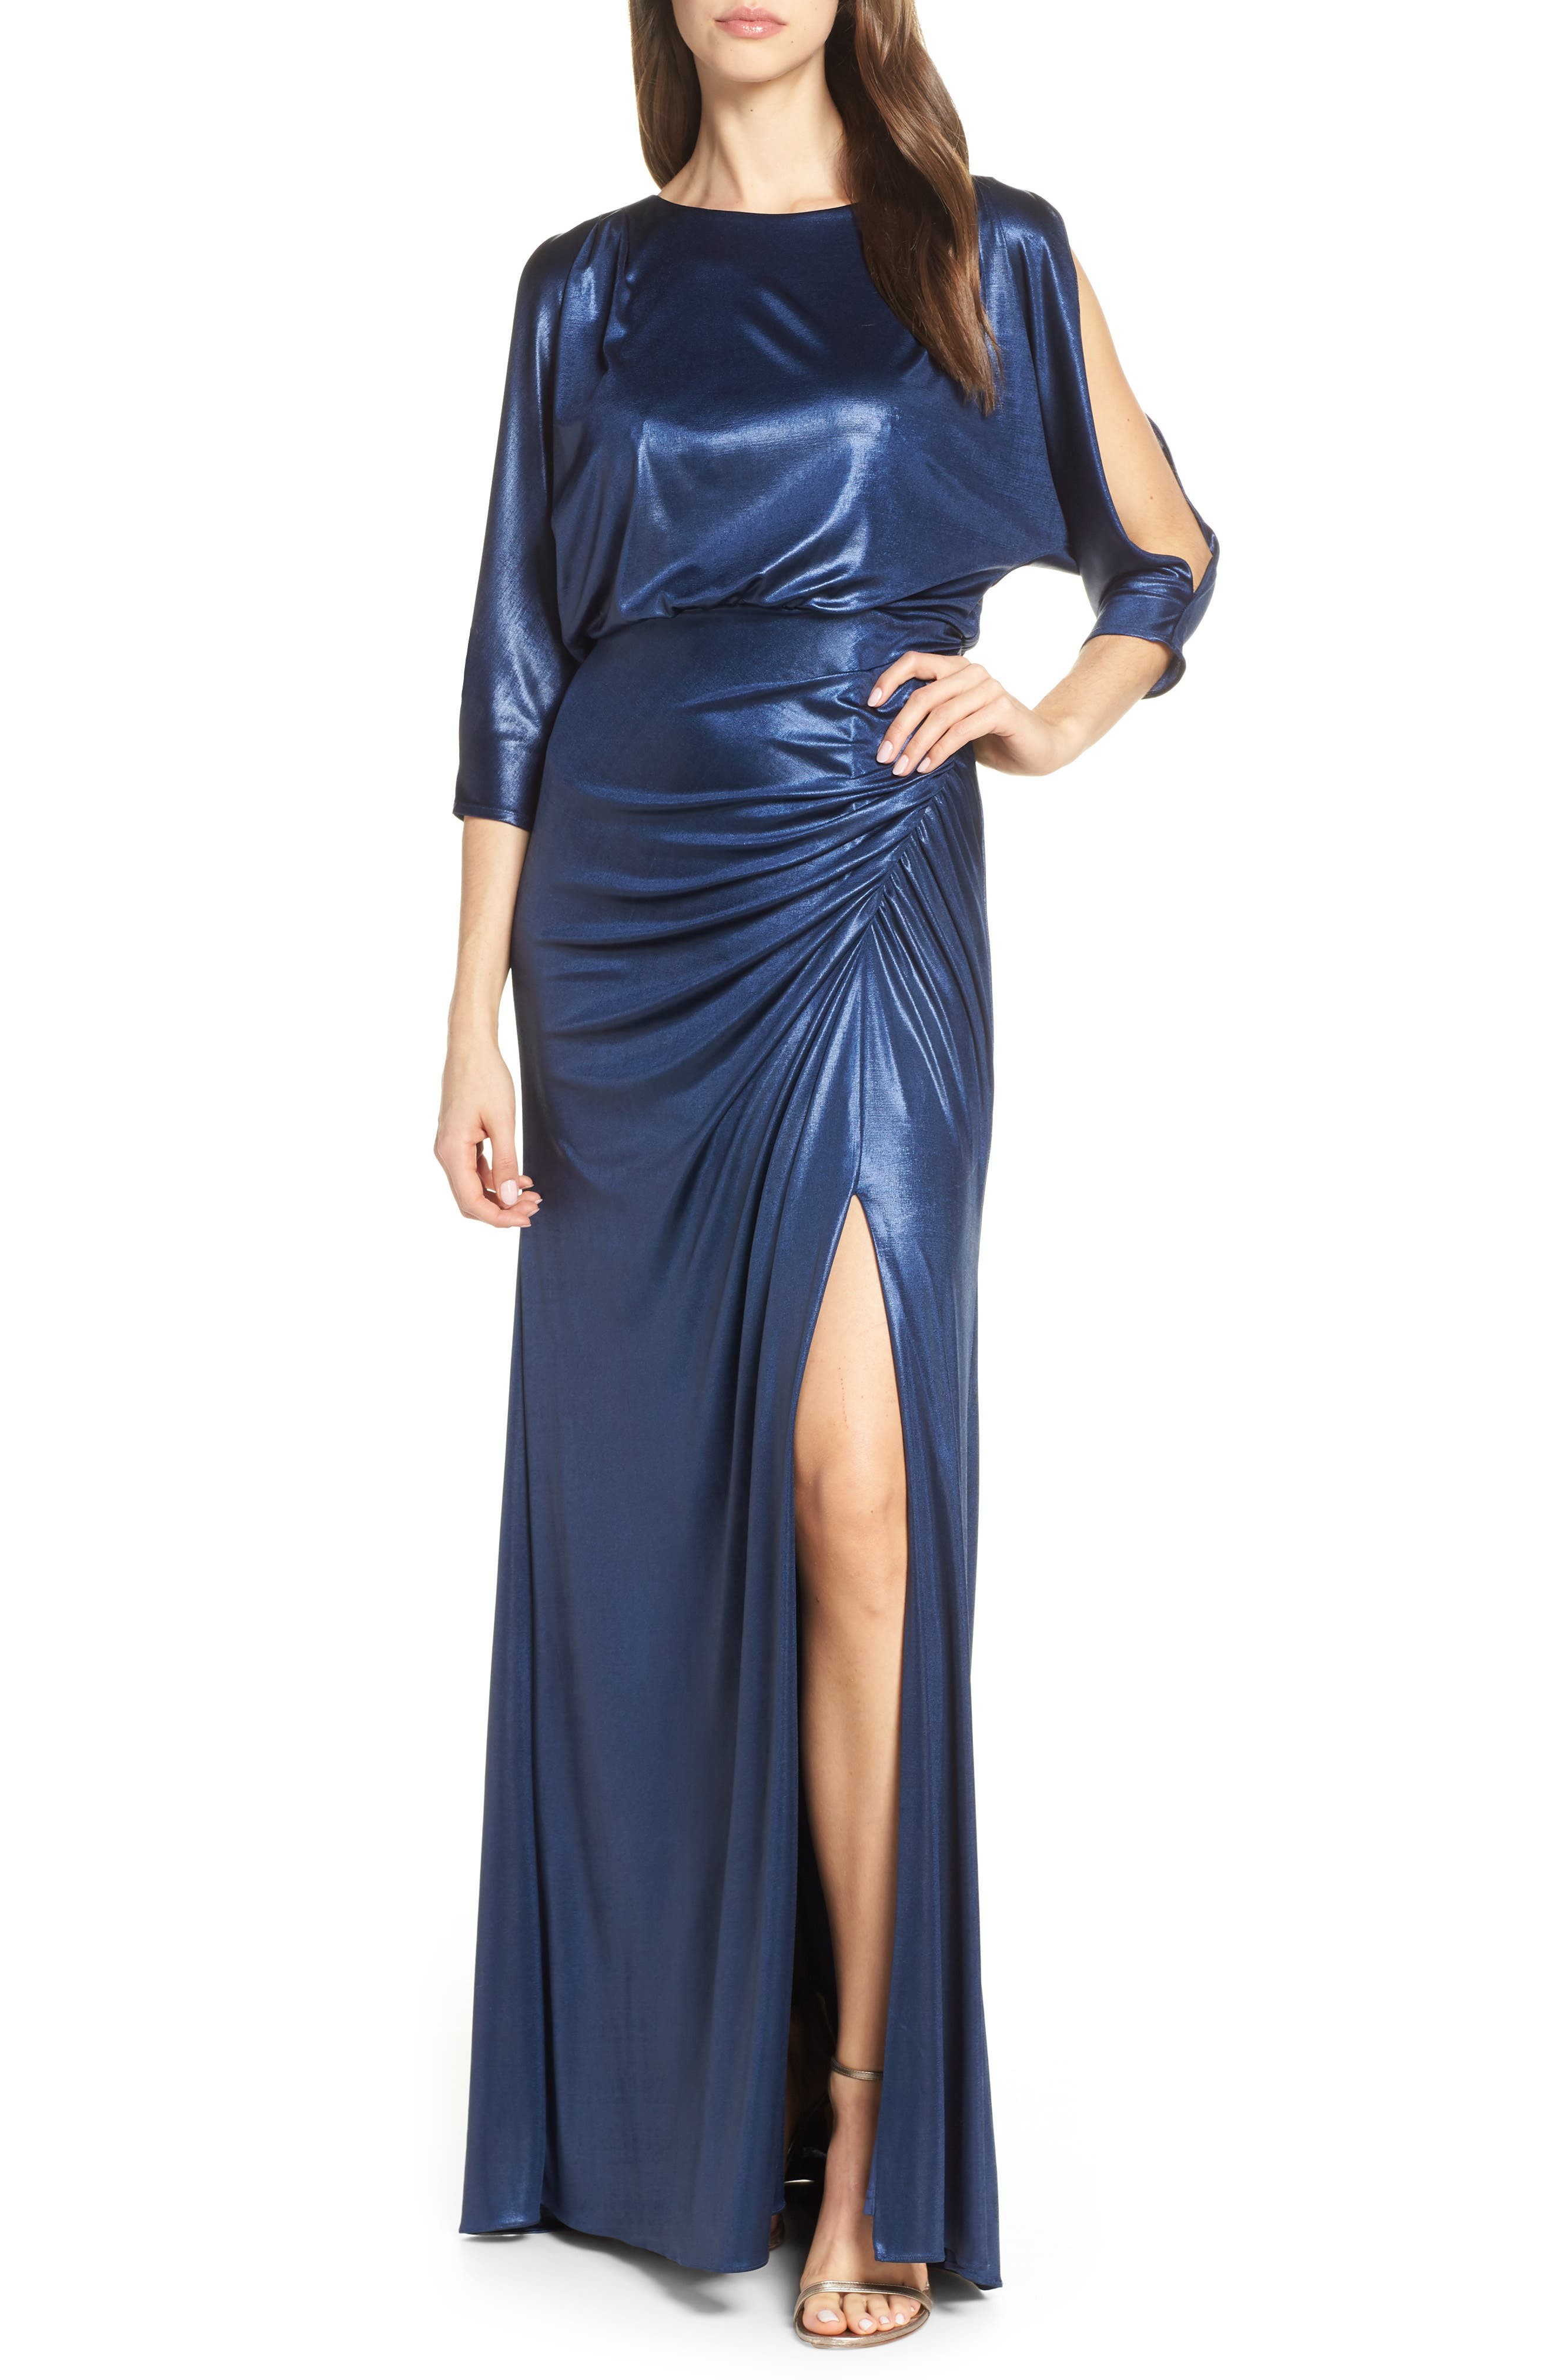 Adrianna Papell Metallic Blouson Evening Dress, Blue